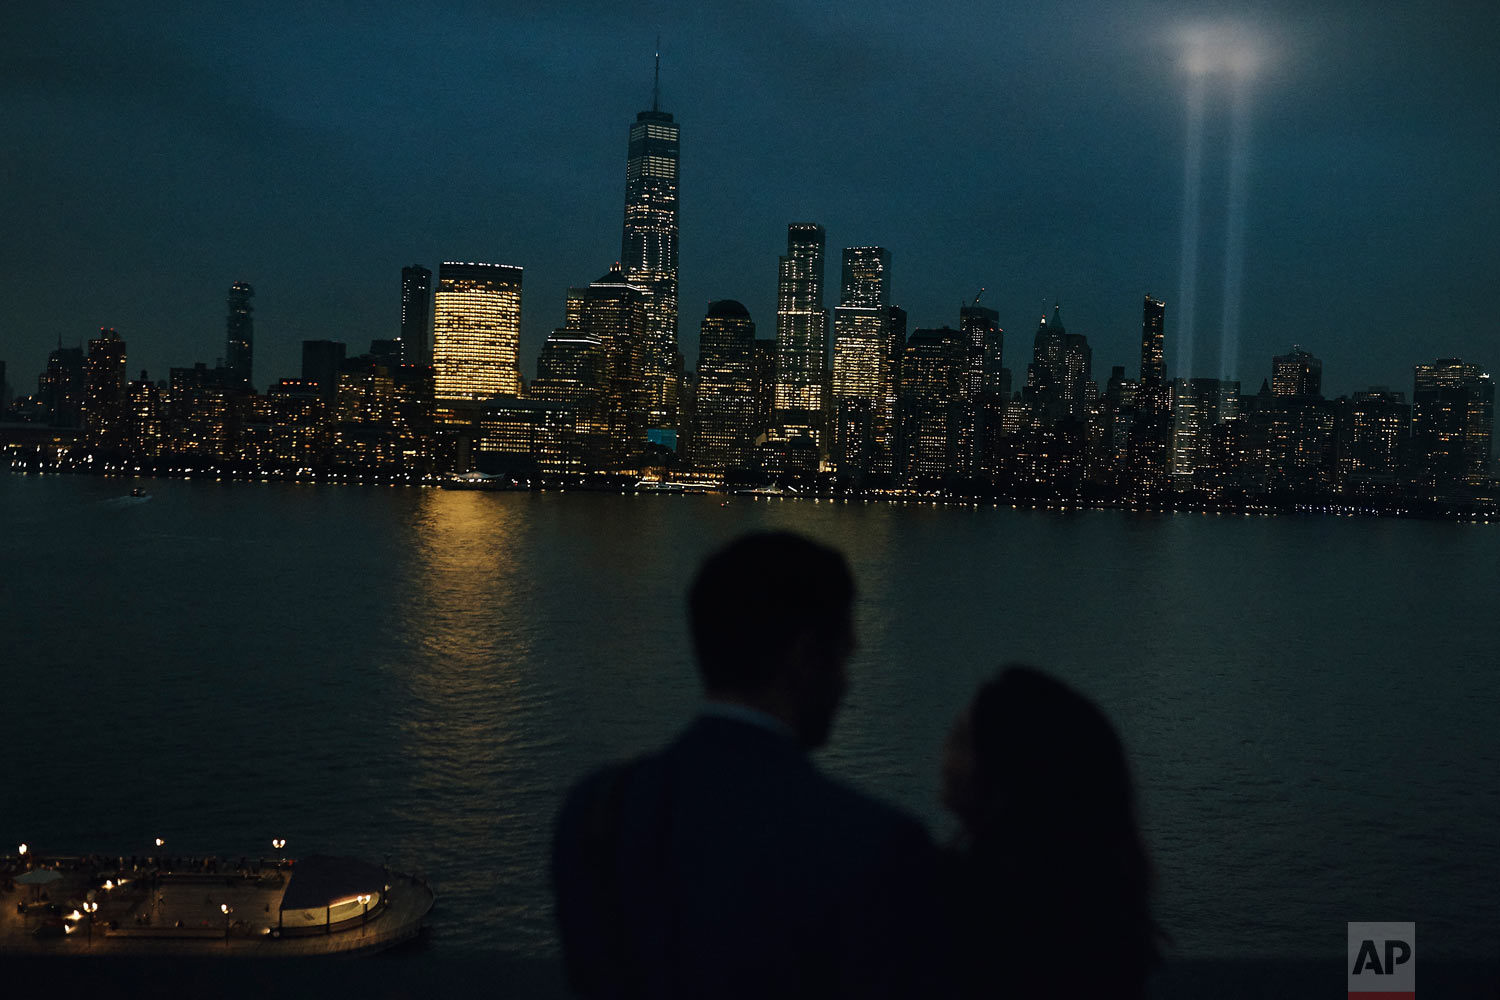 """A couple hugs across the Hudson River in Jersey City, N.J., as the """"Tribute in Light"""" is projected in the sky above the lower Manhattan area of New York, on the 17th anniversary of the Sept. 11 terror attacks, Tuesday, Sept. 11, 2018. (AP Photo/Andres Kudacki)"""